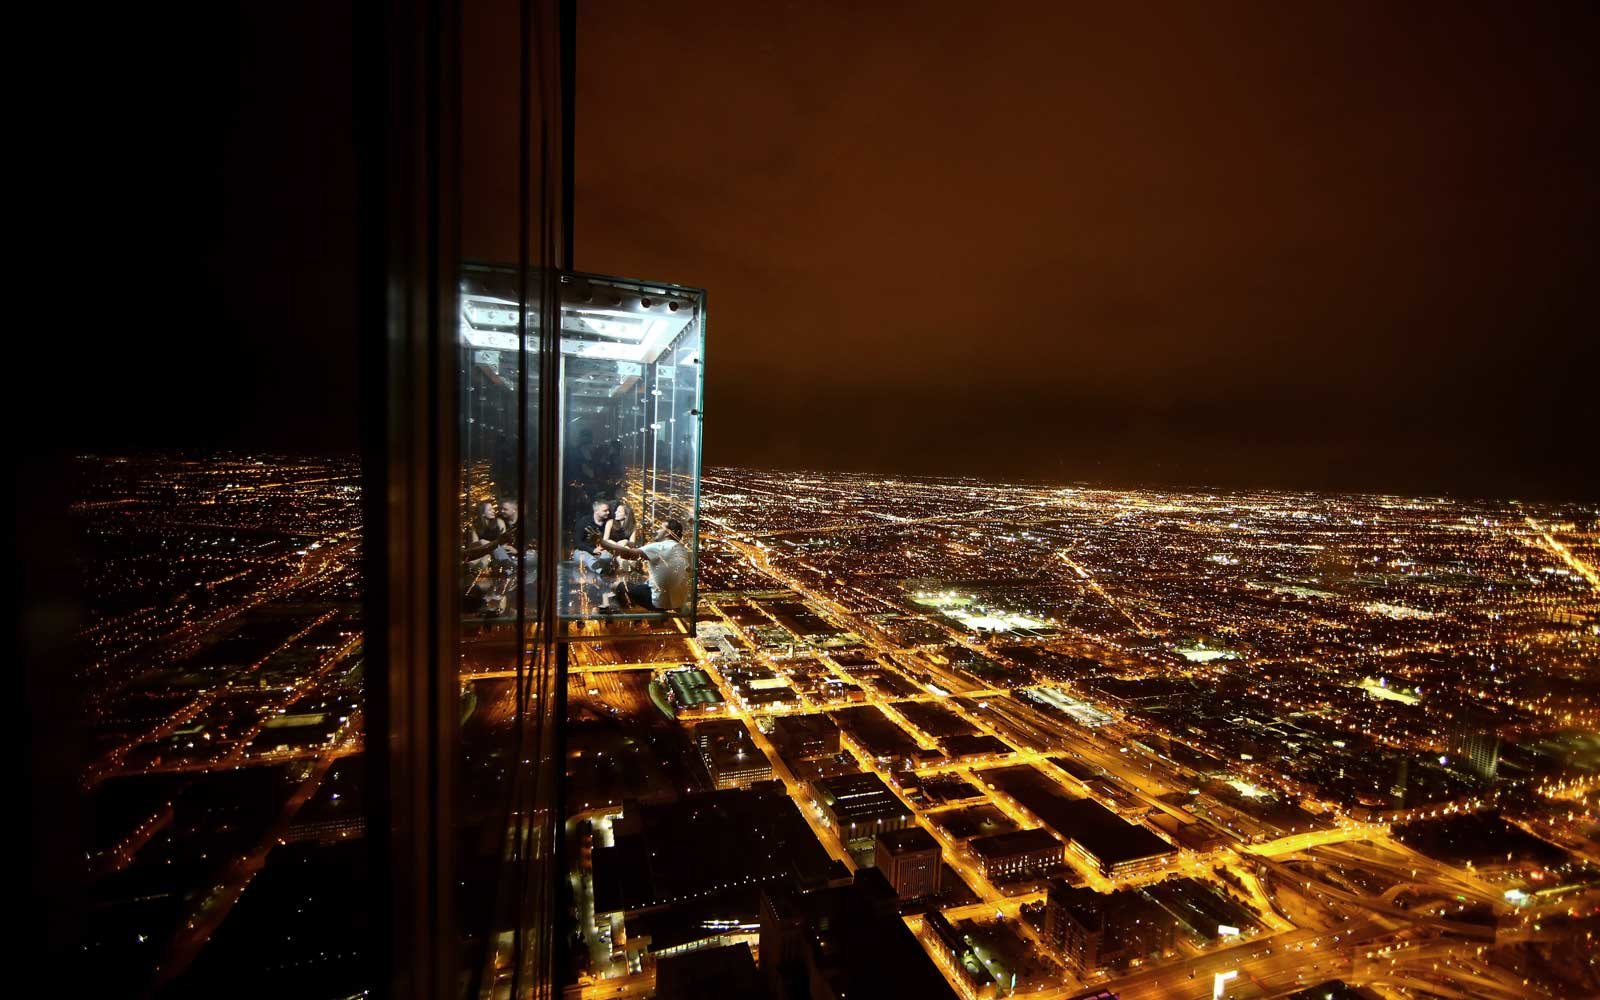 eople are seen at Skydeck Ledge, which is located on the 103rd floor of Willis Tower, second-tallest in United States, in Chicago